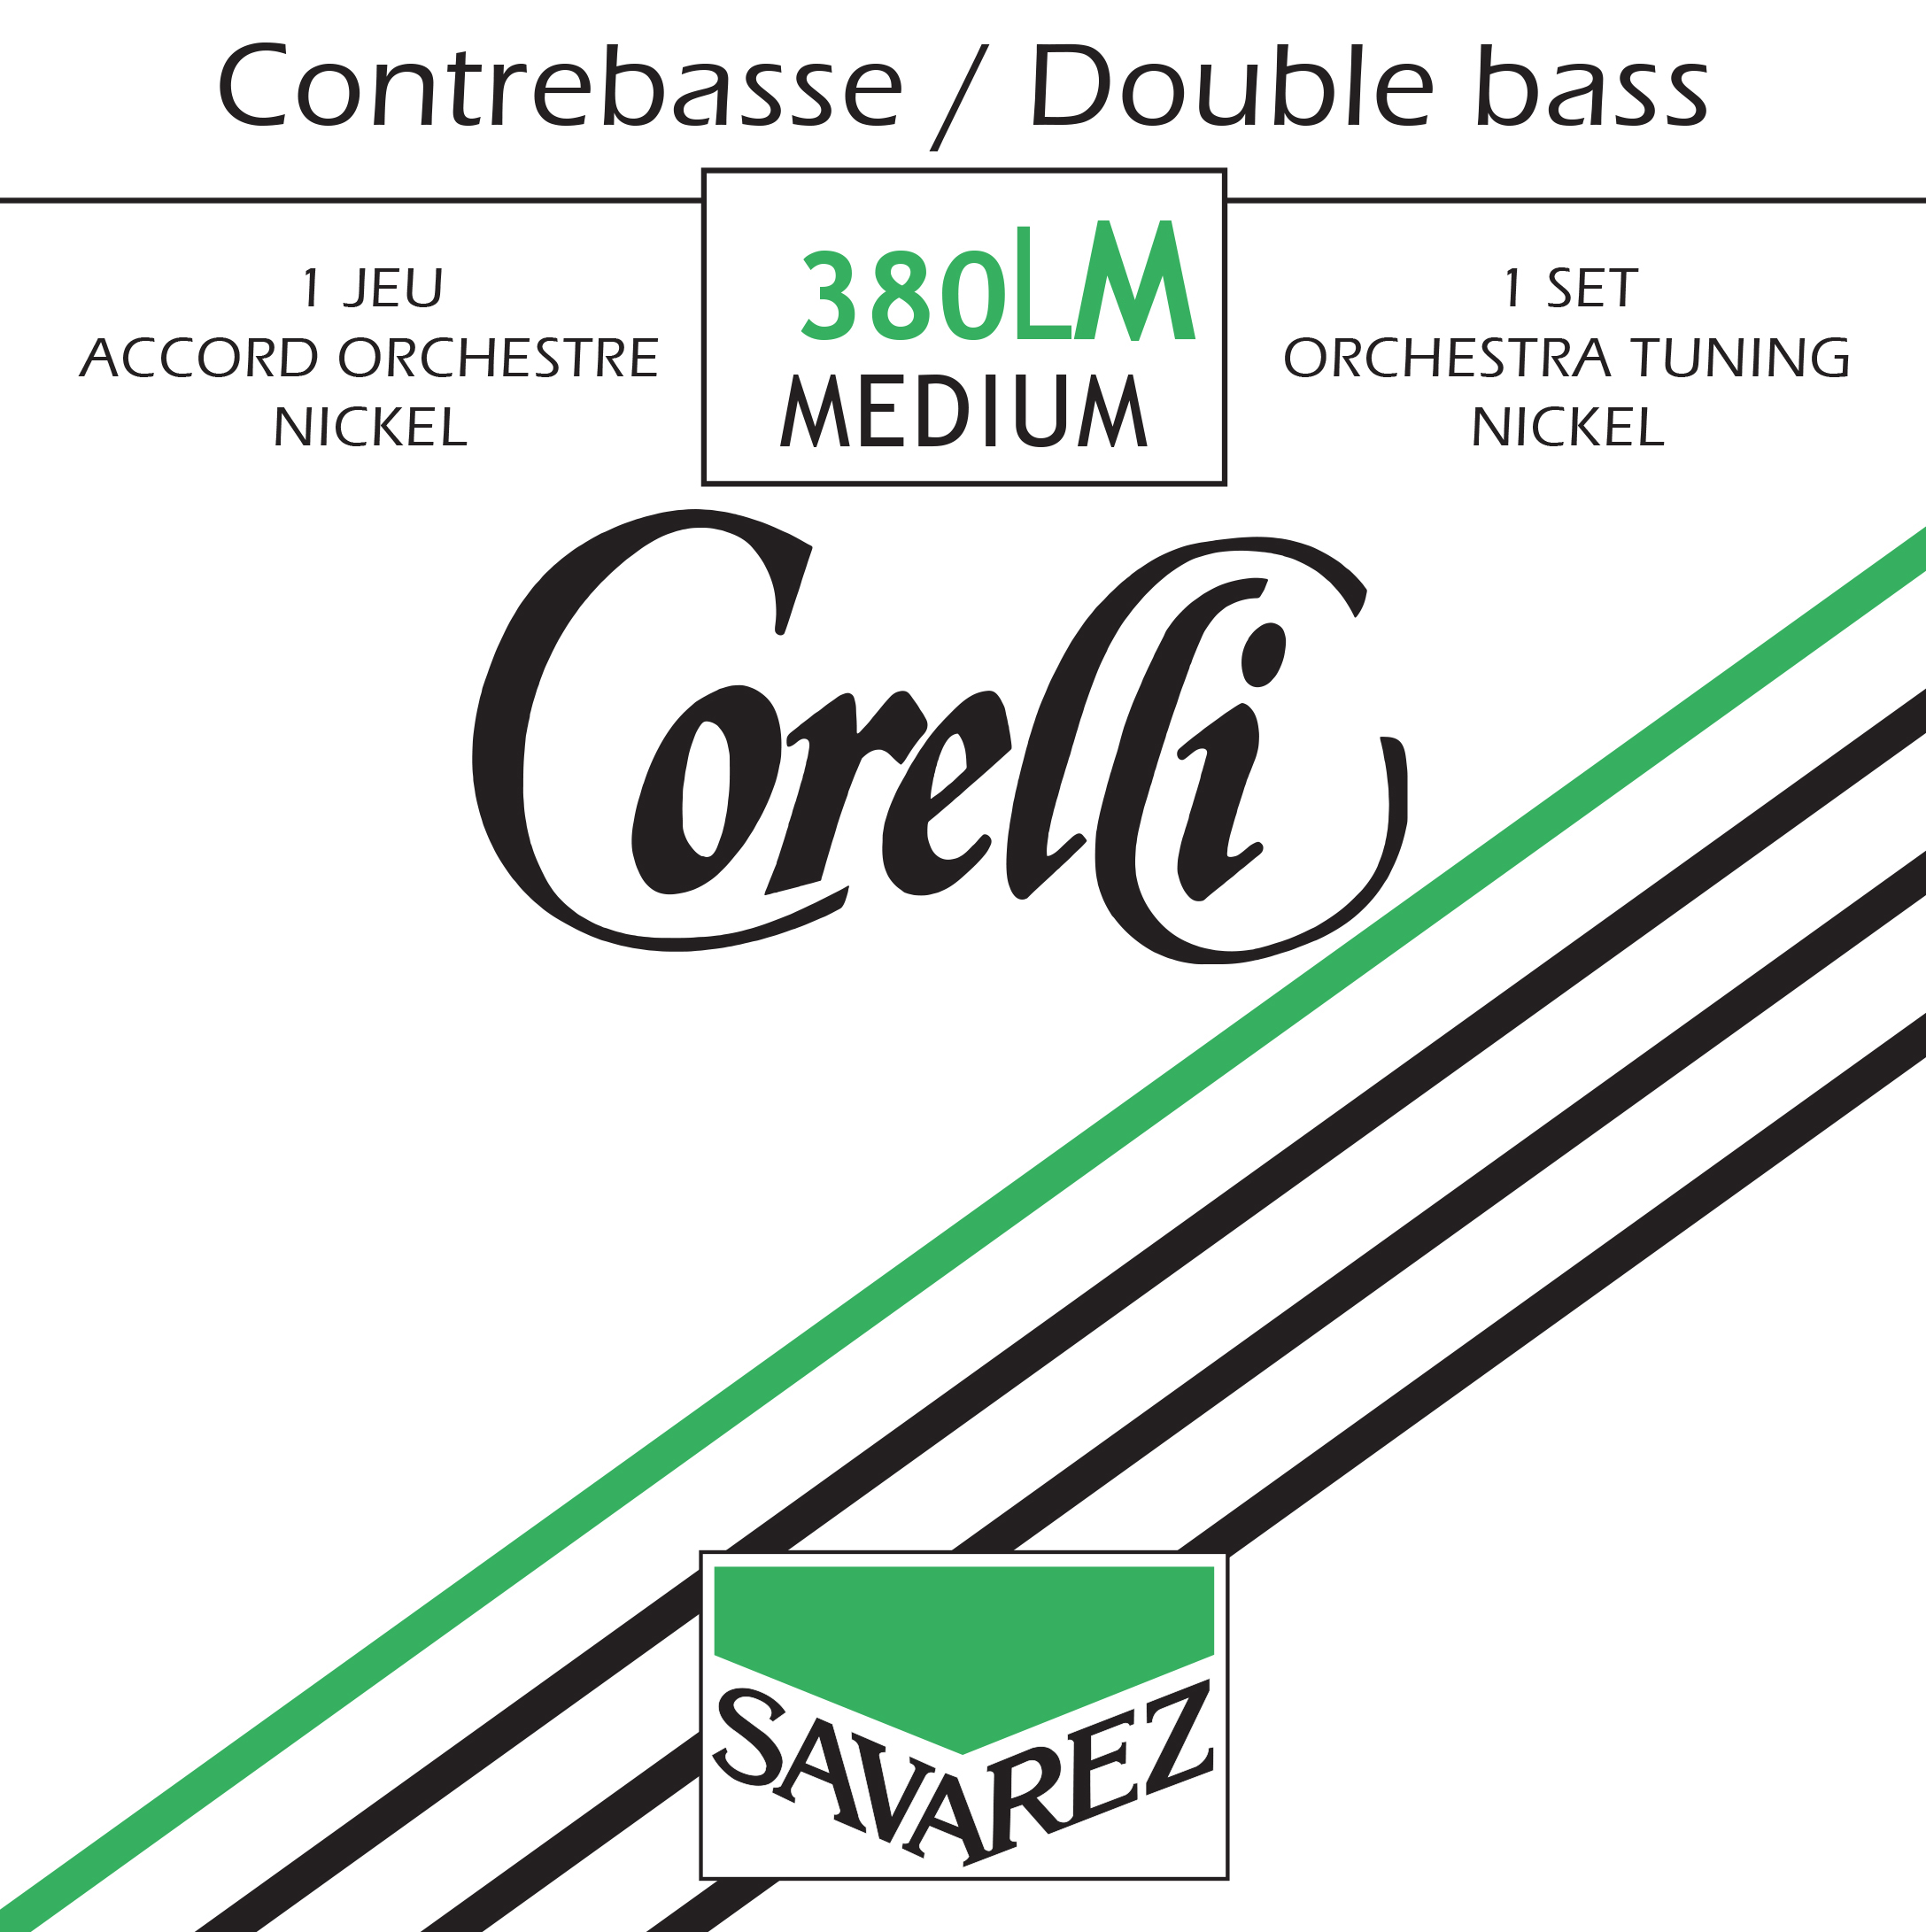 CORELLI MEDIUM TENSION 380LM NICKEL ORCHESTRA SET